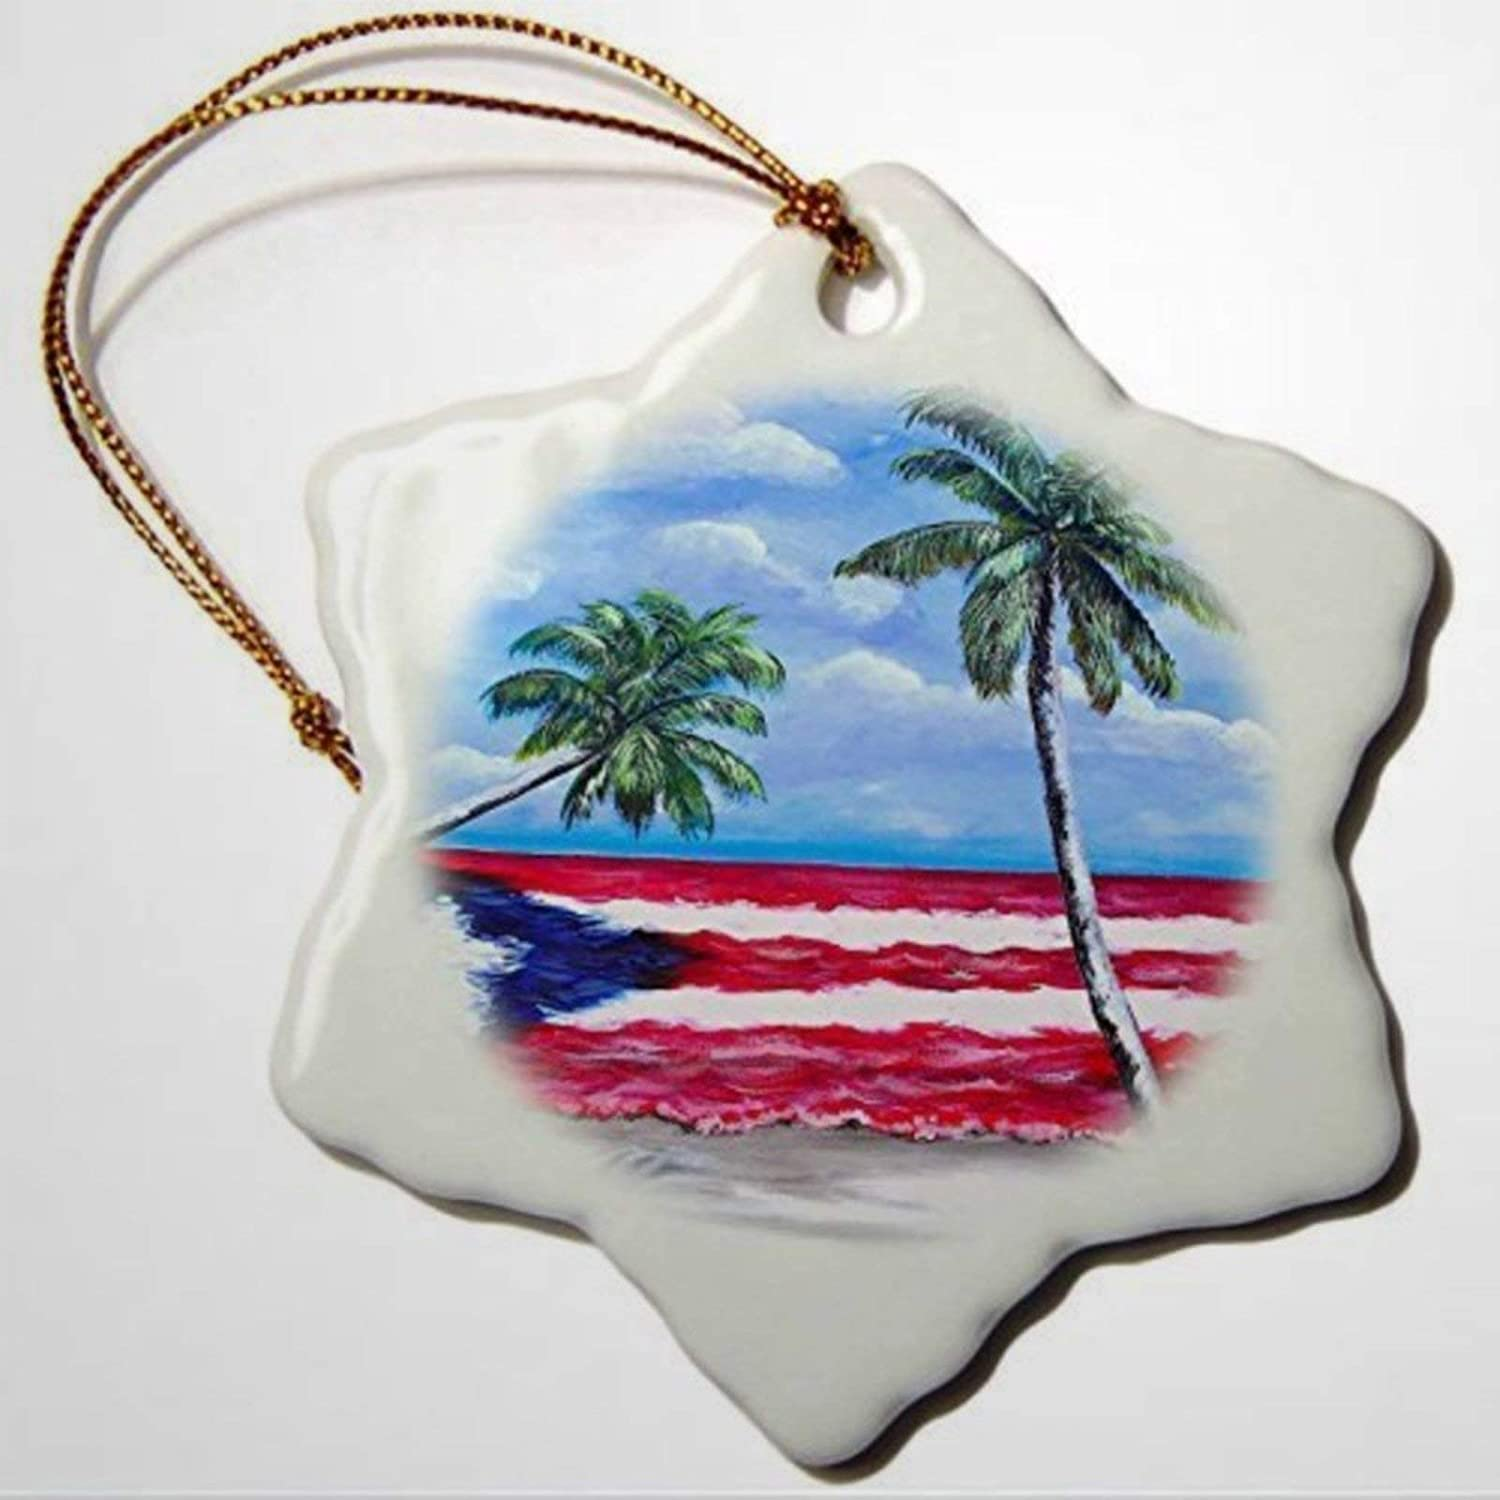 BYRON HOYLE Puerto Rican Art Palm Trees and Puerto Rican Flag Christmas Ornaments Pandemic Xmas Decor Holiday Present